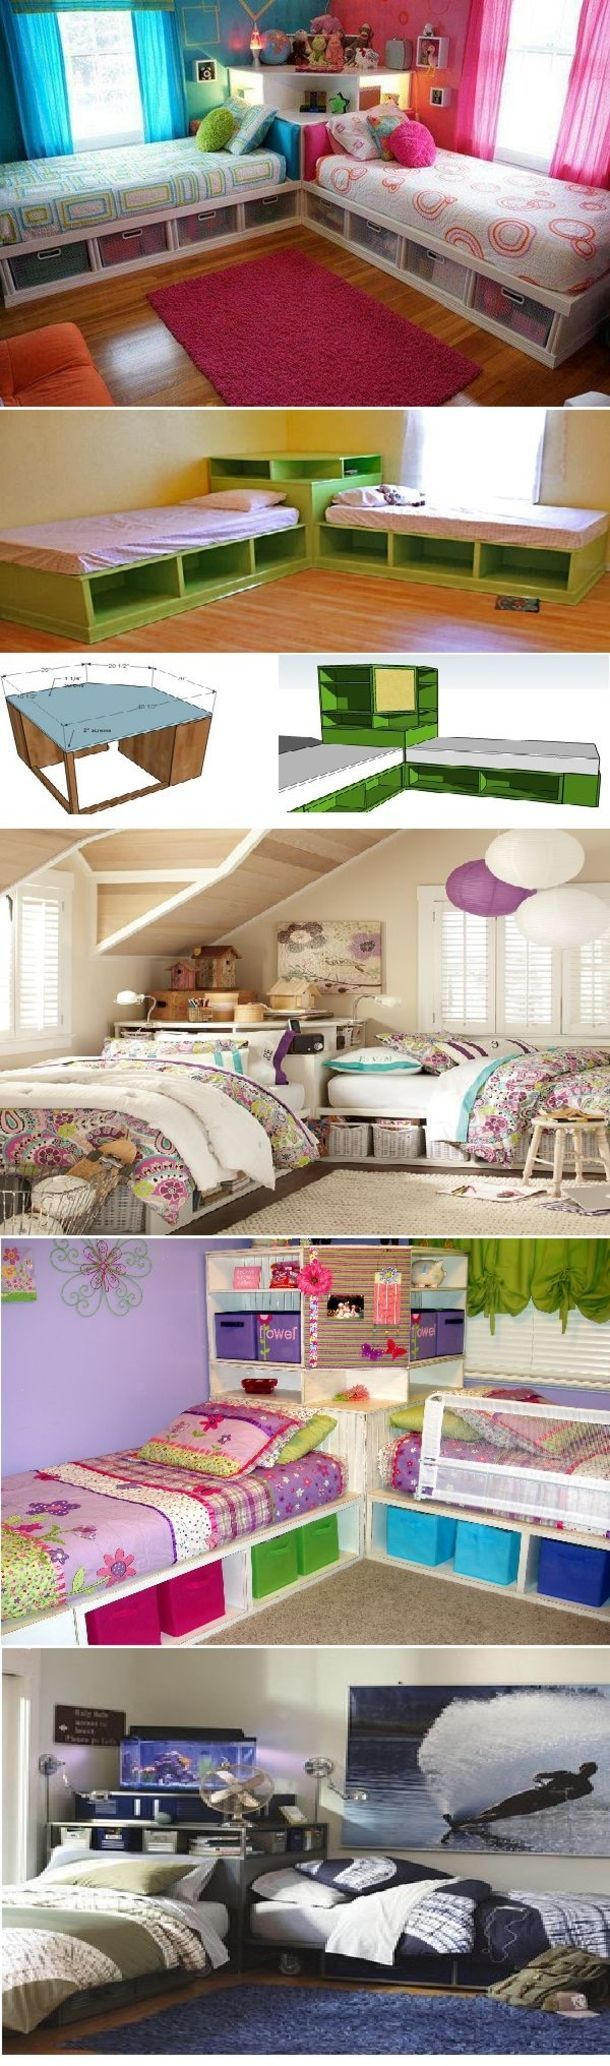 Kids Bedroom Beds 1031 best kid bedrooms images on pinterest | room, home and